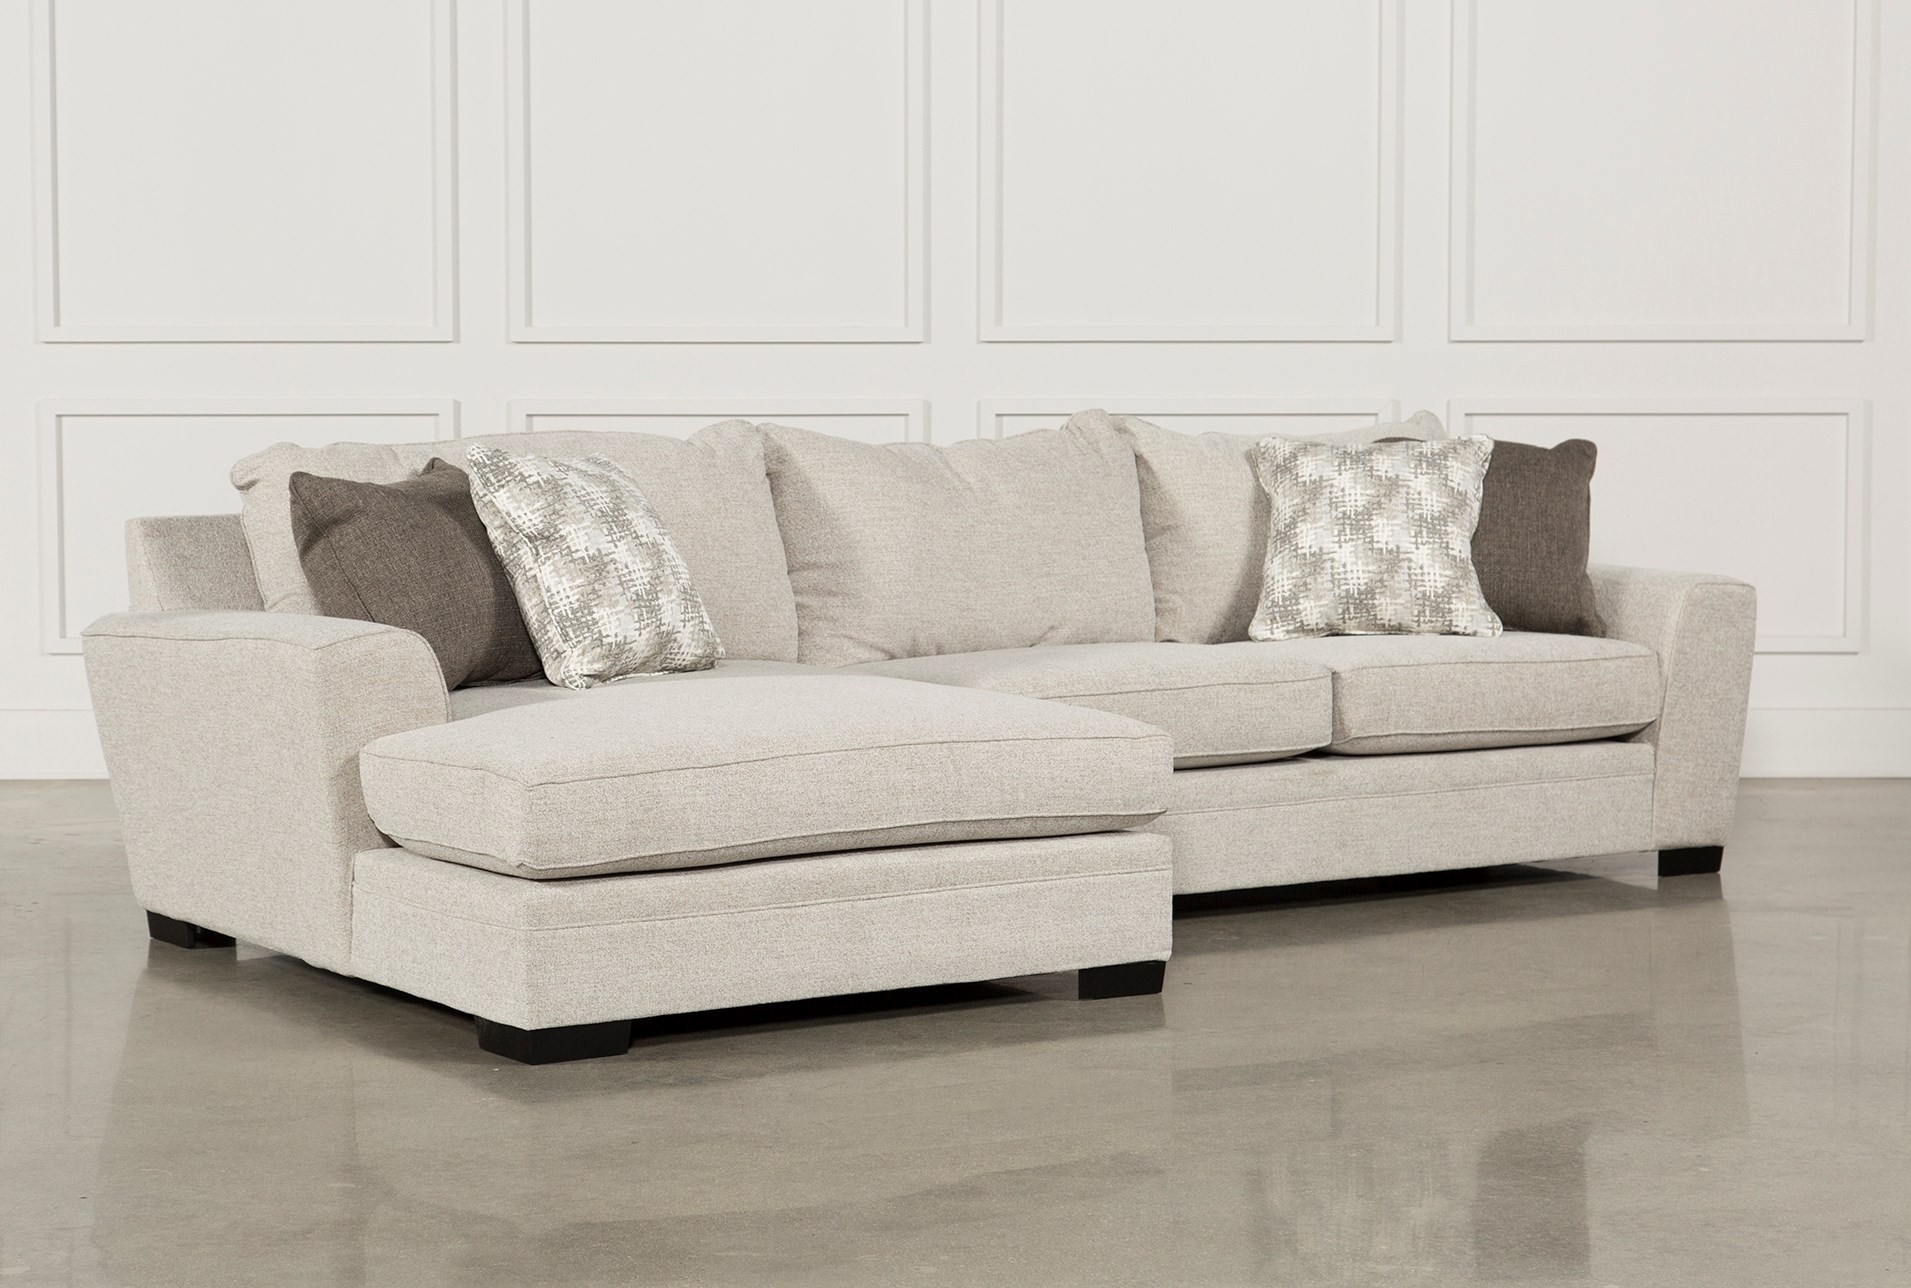 Living Spaces Sectional Sofas Kerri 2 Piece W Raf Chaise 107153 0 Inside Kerri 2 Piece Sectionals With Raf Chaise (Image 21 of 25)